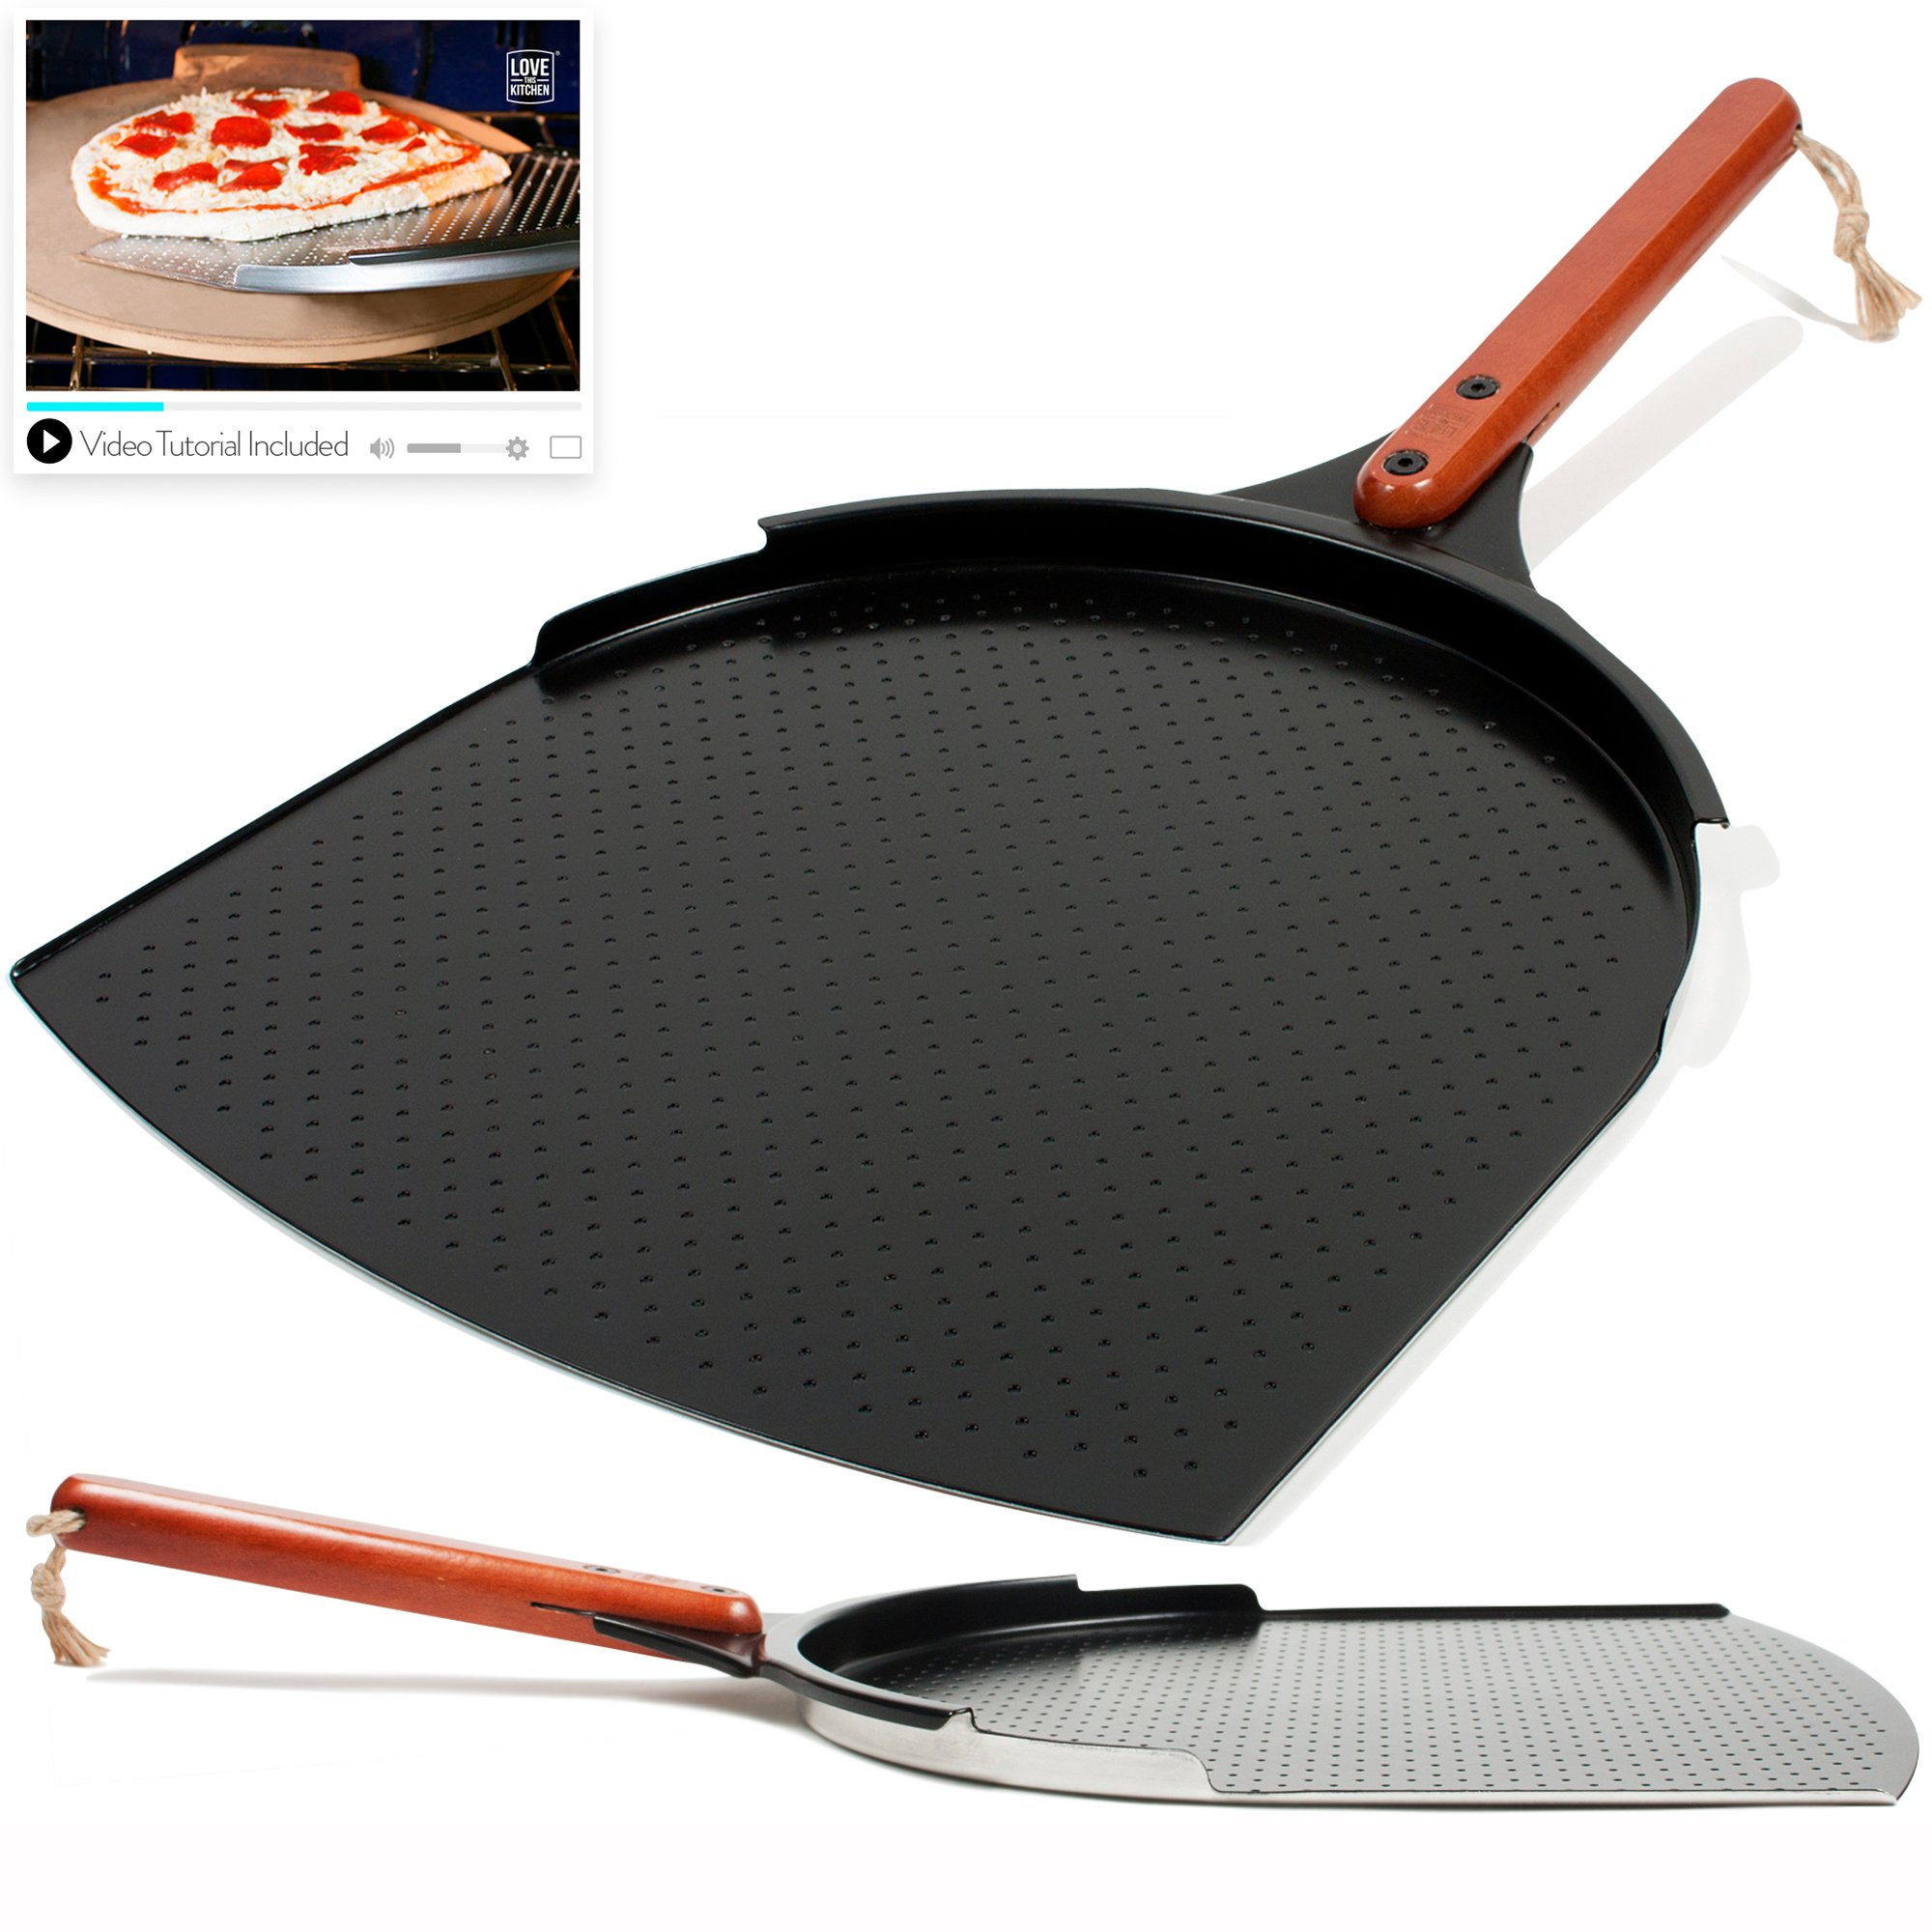 The Ultimate Pizza Making Set - 14'' x 16'' Pizza Stone, 14'' Aluminum Pizza Peel and 14'' Stainless Steel Rocker Pizza Cutter | Great for Baking Pizza, Cookies and Bread in Any Oven or Grill by Love This Kitchen (Image #3)